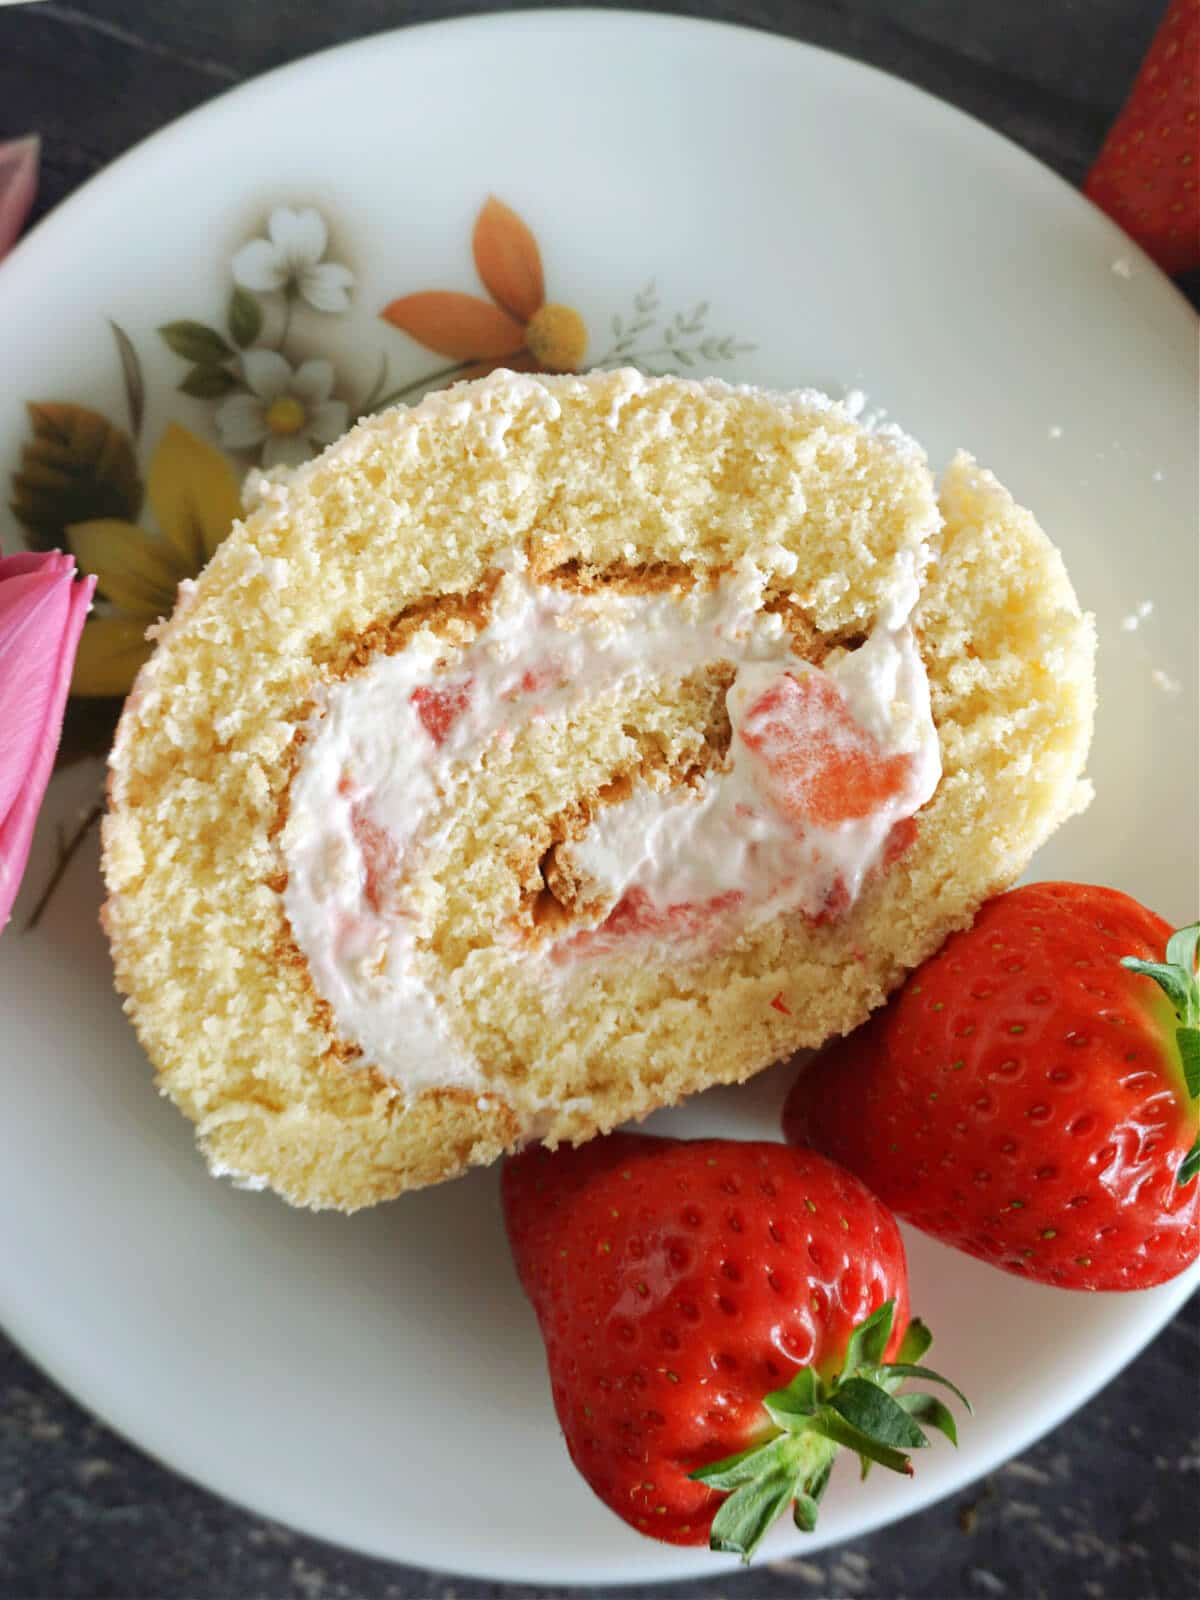 Overhead shot of a slice of strawberry cake roll on a white plate